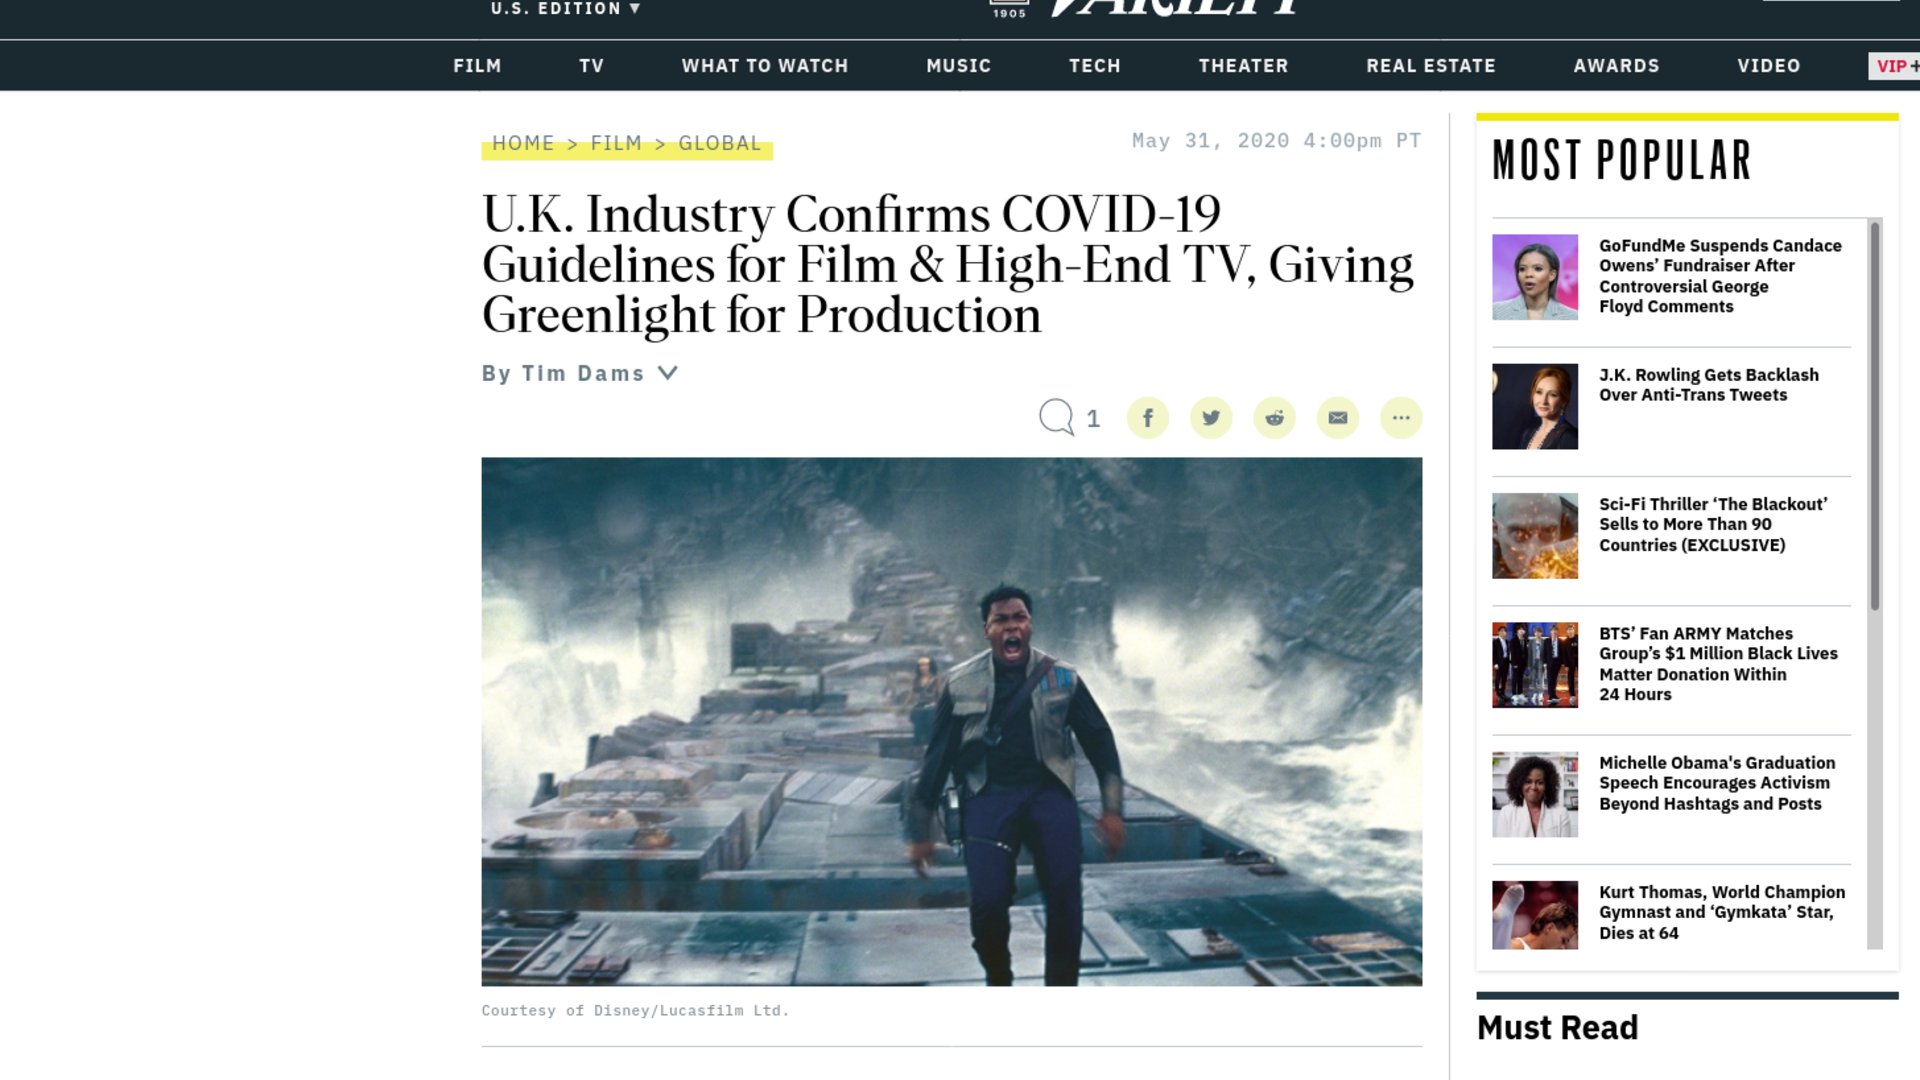 Fairness Rocks News U.K. Industry Confirms COVID-19 Guidelines for Film & High-End TV, Giving Greenlight for Production